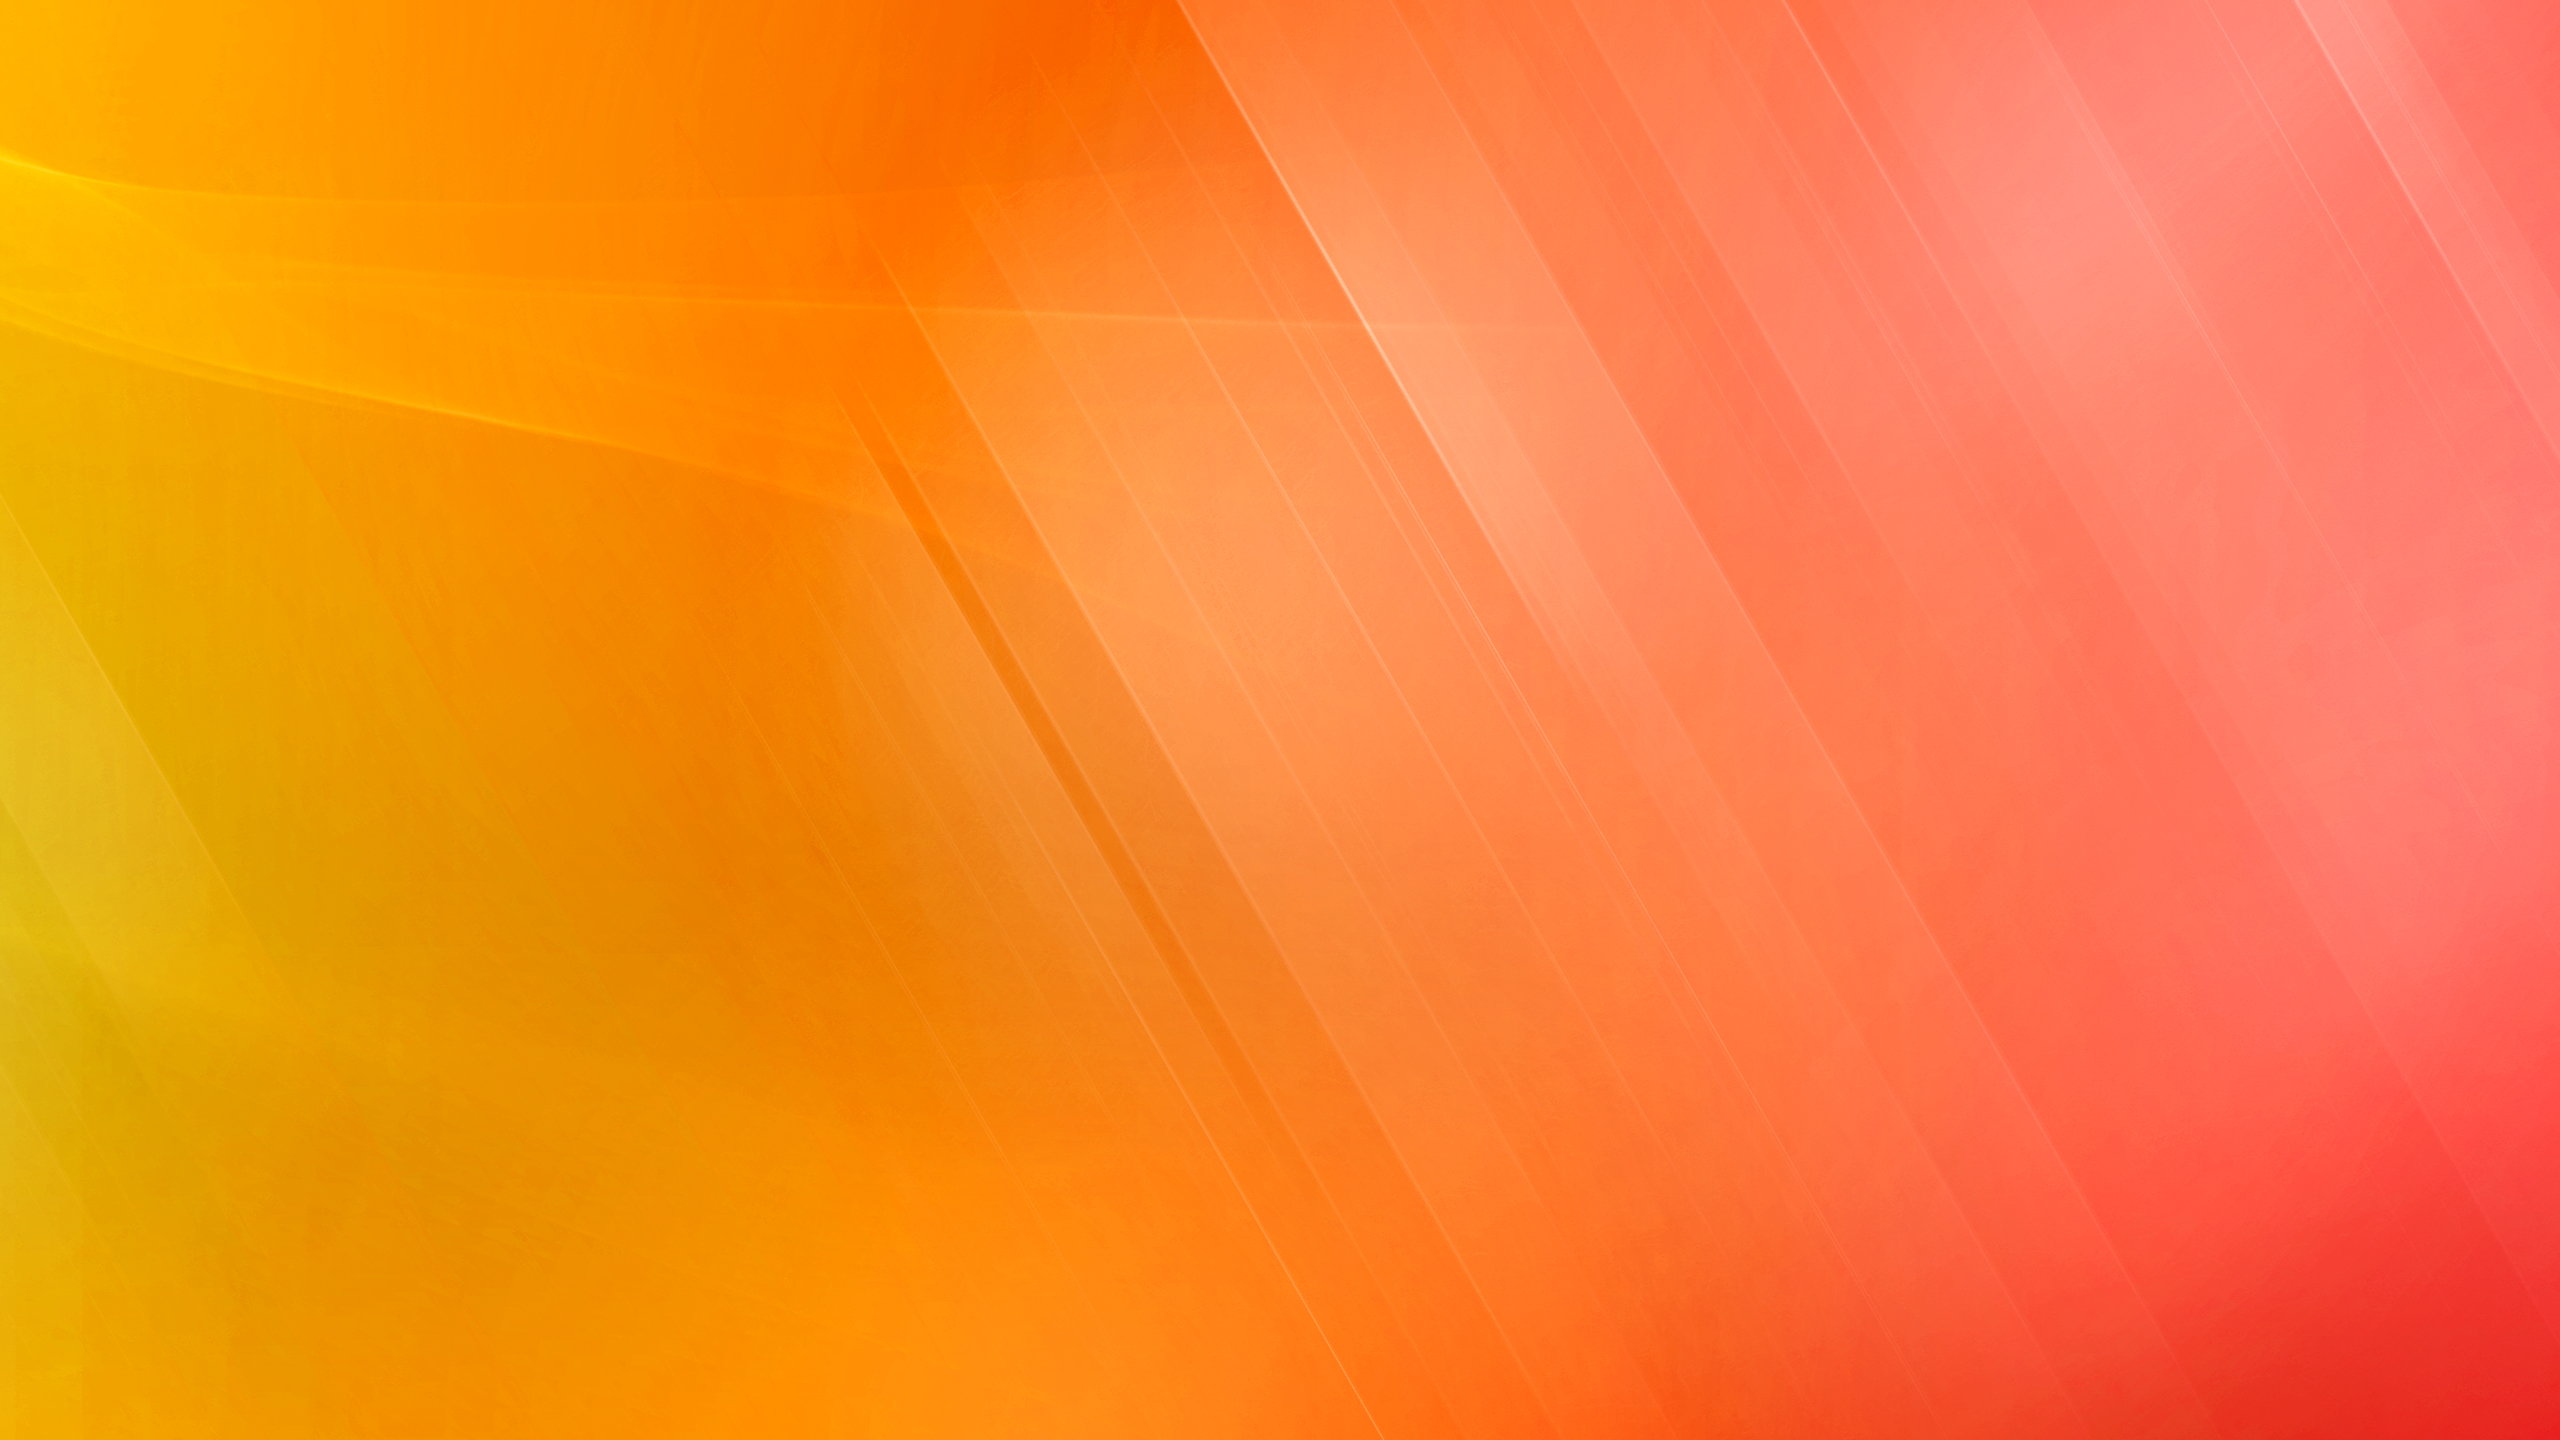 37 372454 original resolution popular orange yellow background hd